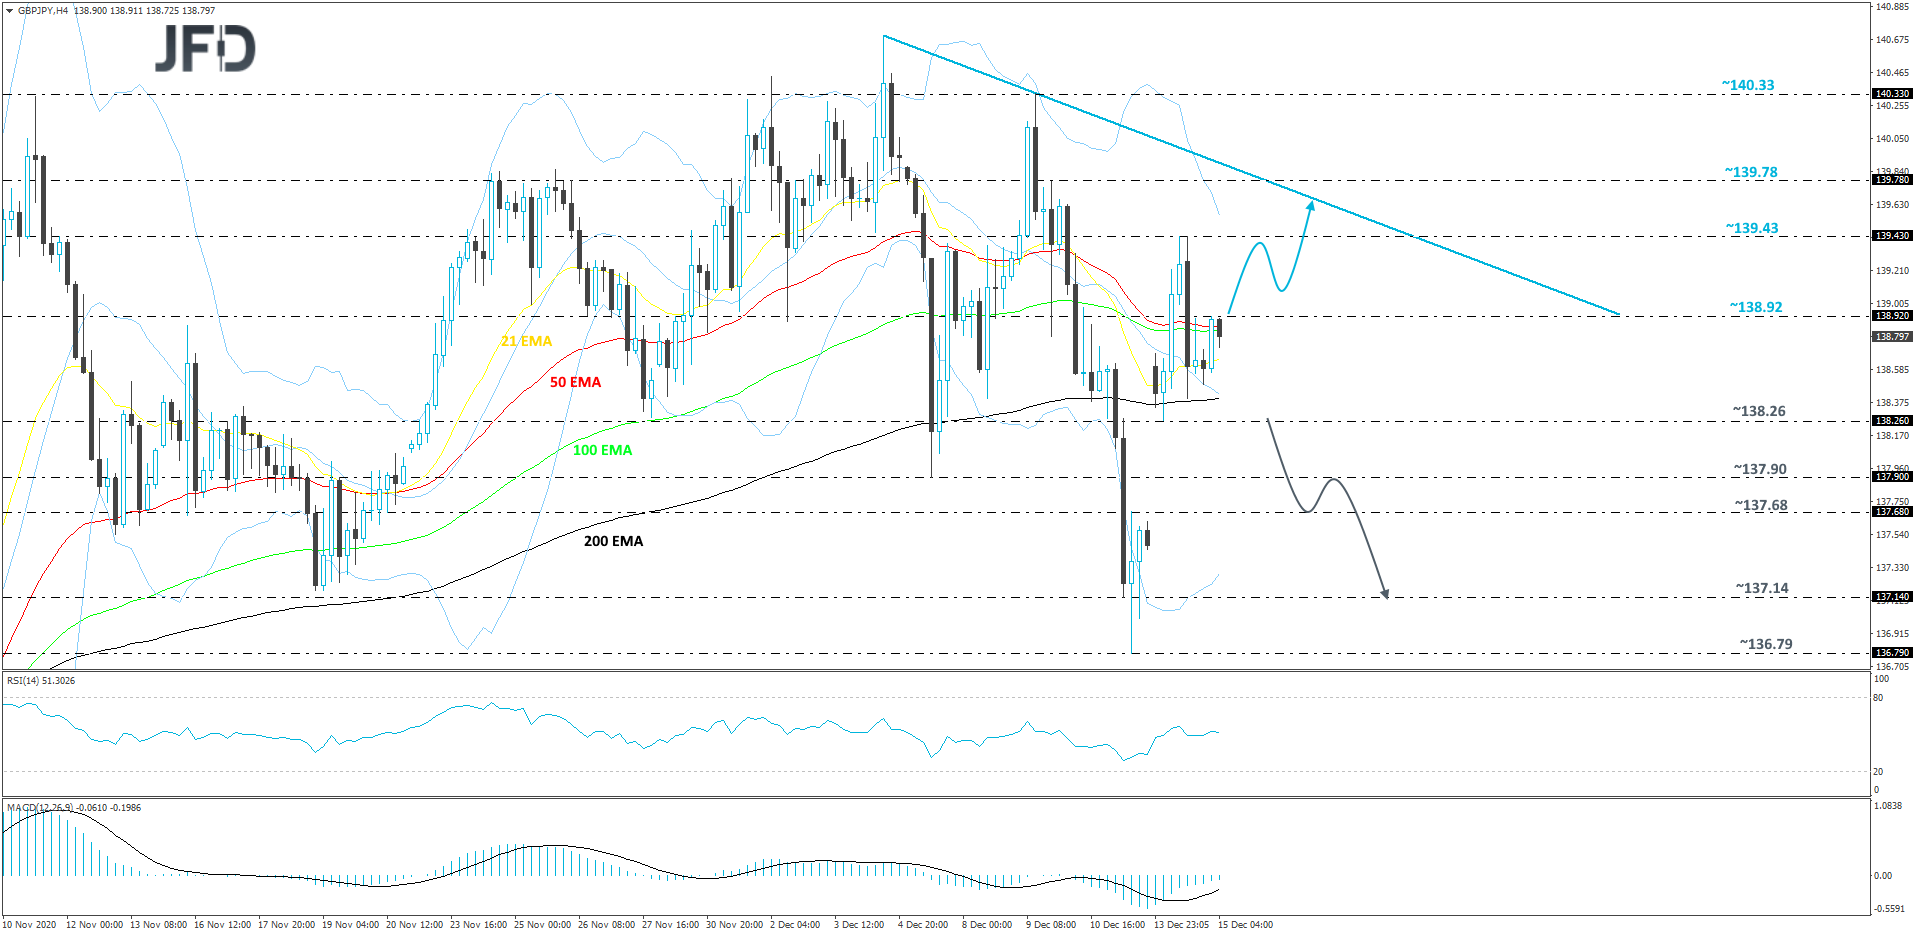 GBP/JPY 4-hour chart technical analysis